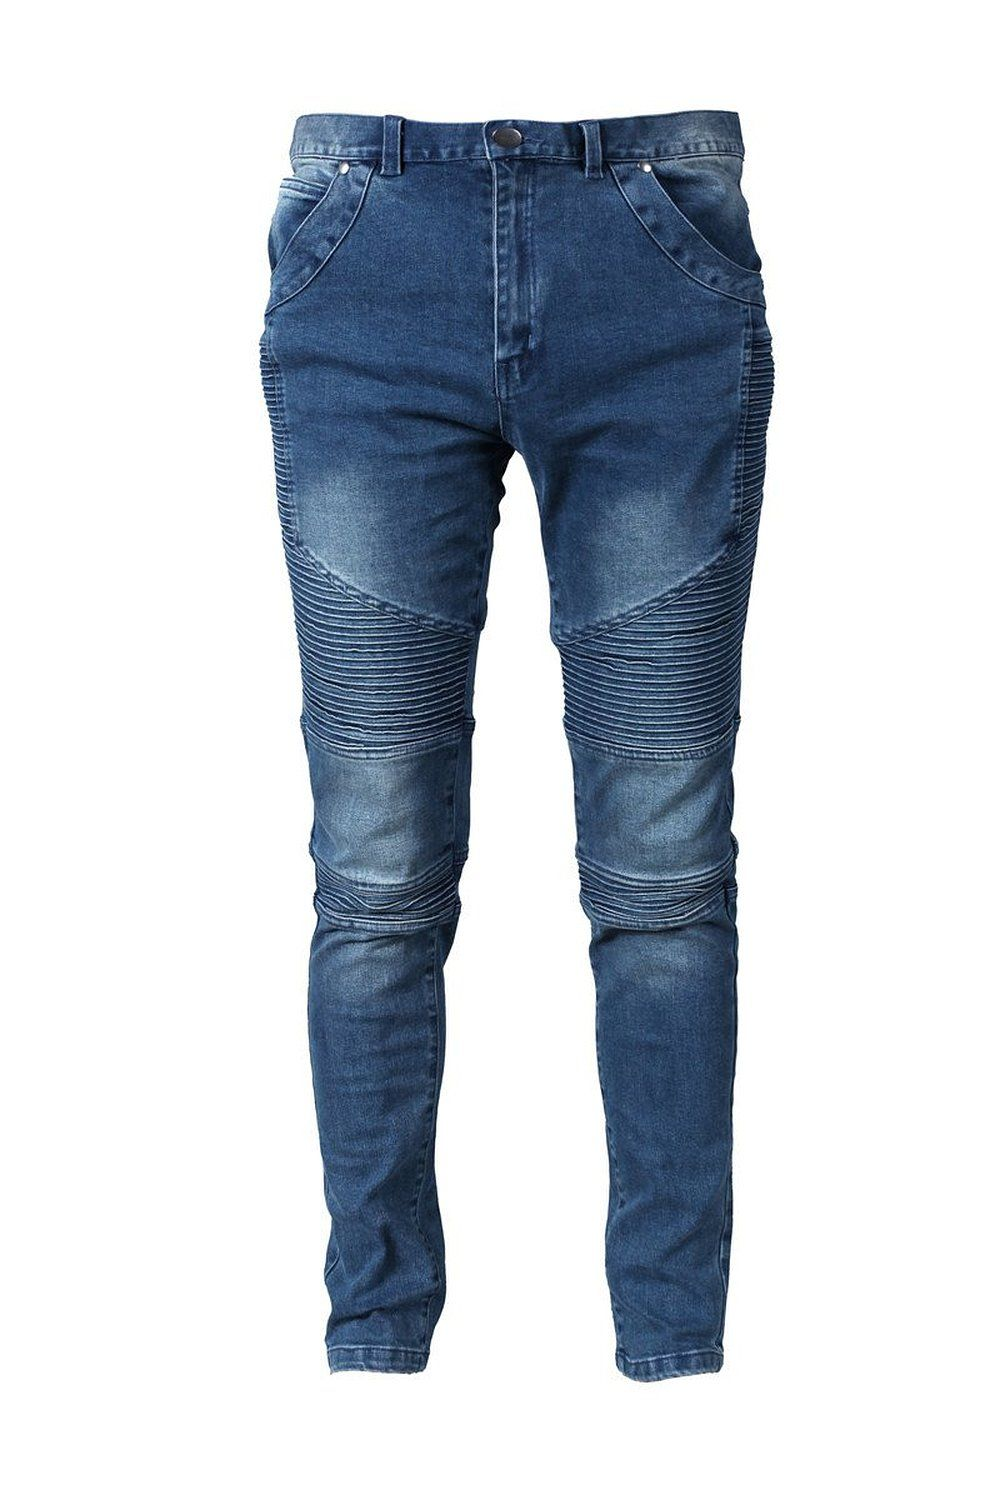 f7fea5e0c35 Moonwalk Men`s Skinny Slim Denim Washed Hip Hop Ripped Biker Jeans Pants at  Amazon Men s Clothing store